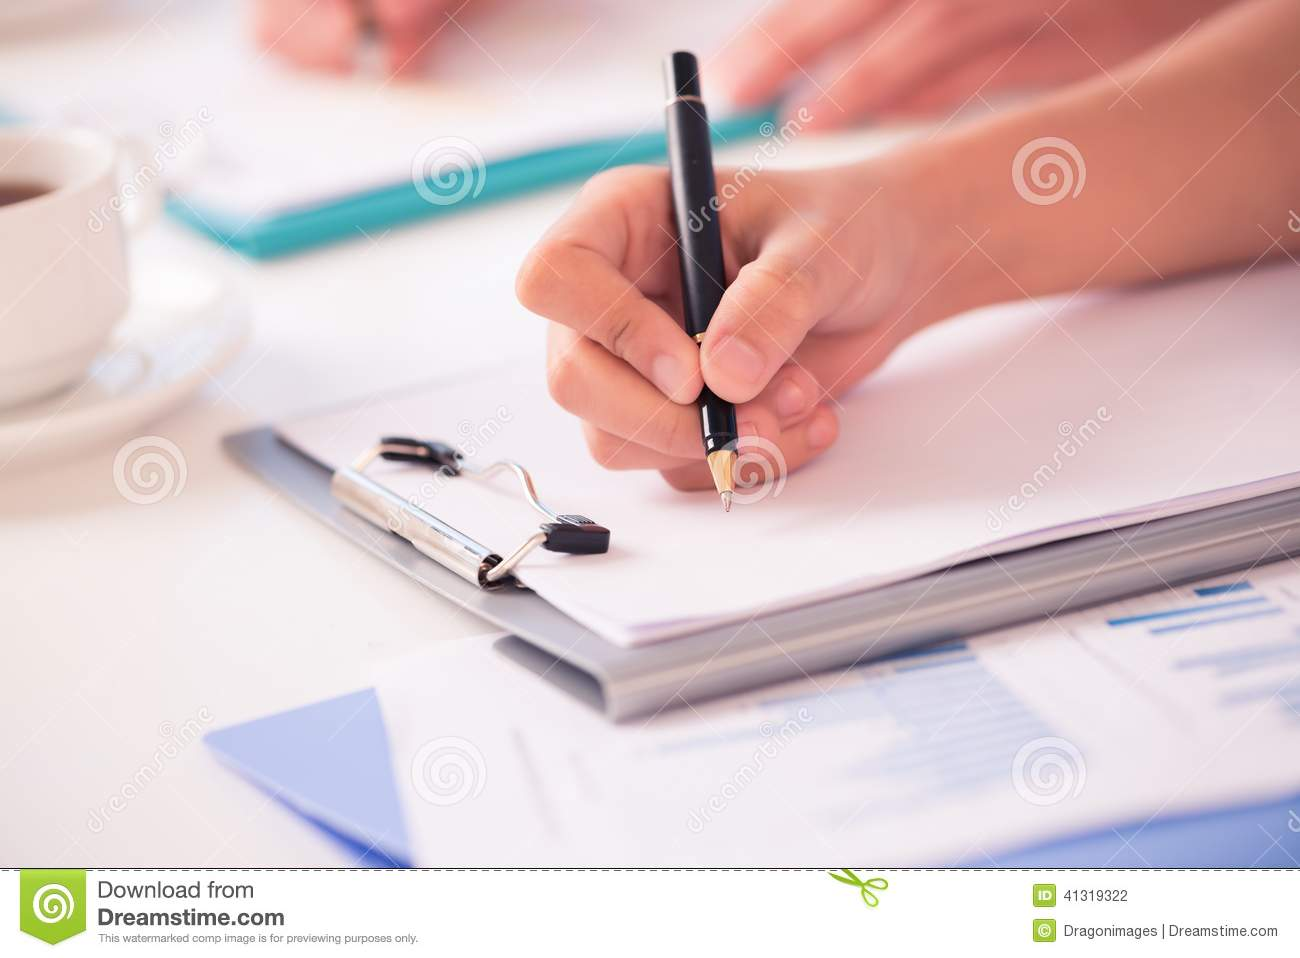 ... Services, CV Writing Services, Resume Writing Services, Recruitment